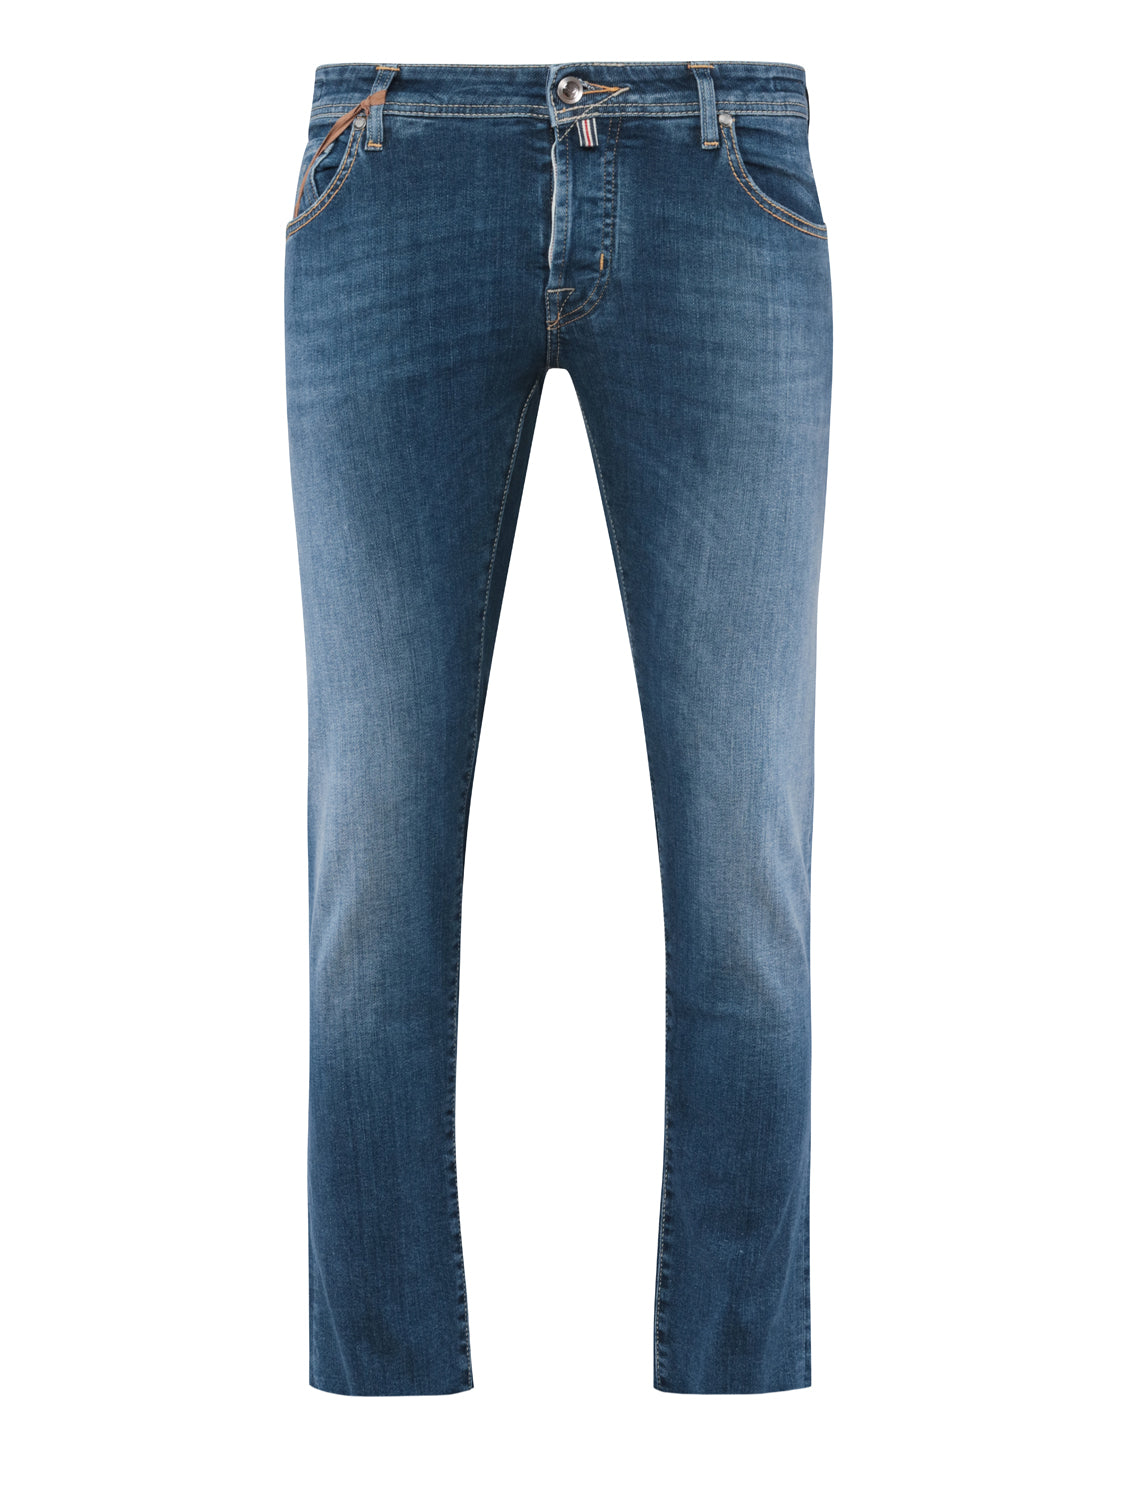 Jacob Cohen J622 Limited Edition Light Wash Jeans (Light Wash)